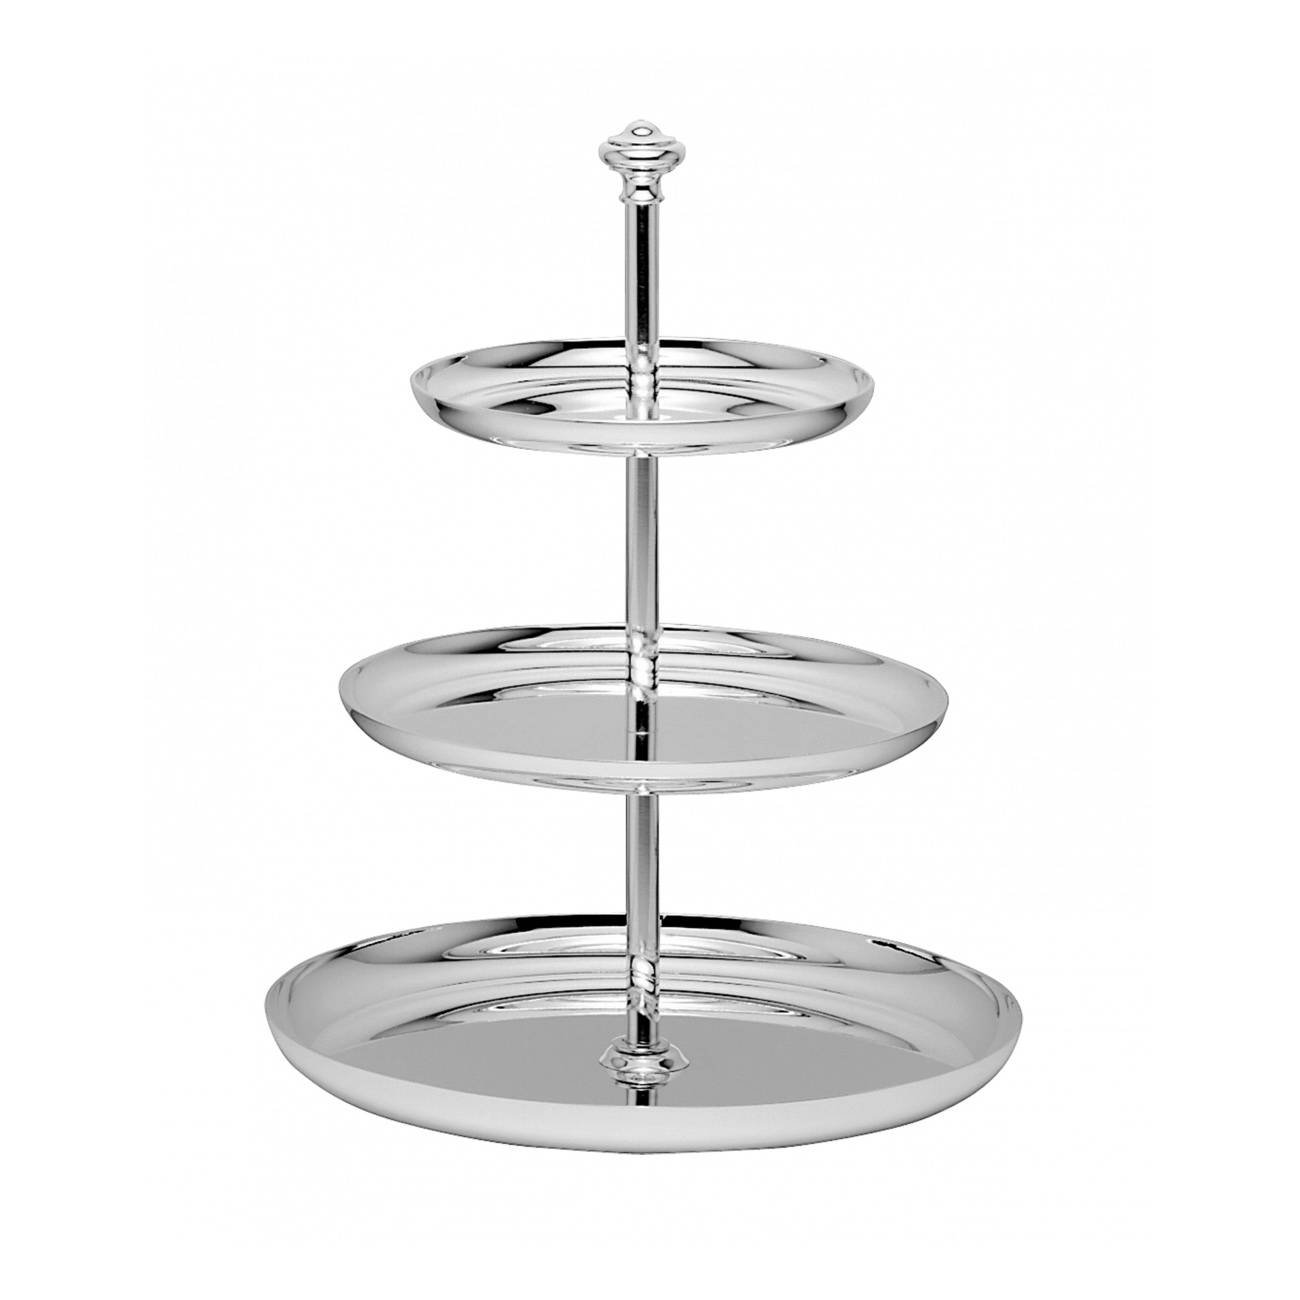 Christofle Albi Silver Plated Three Tier Pastry Stand